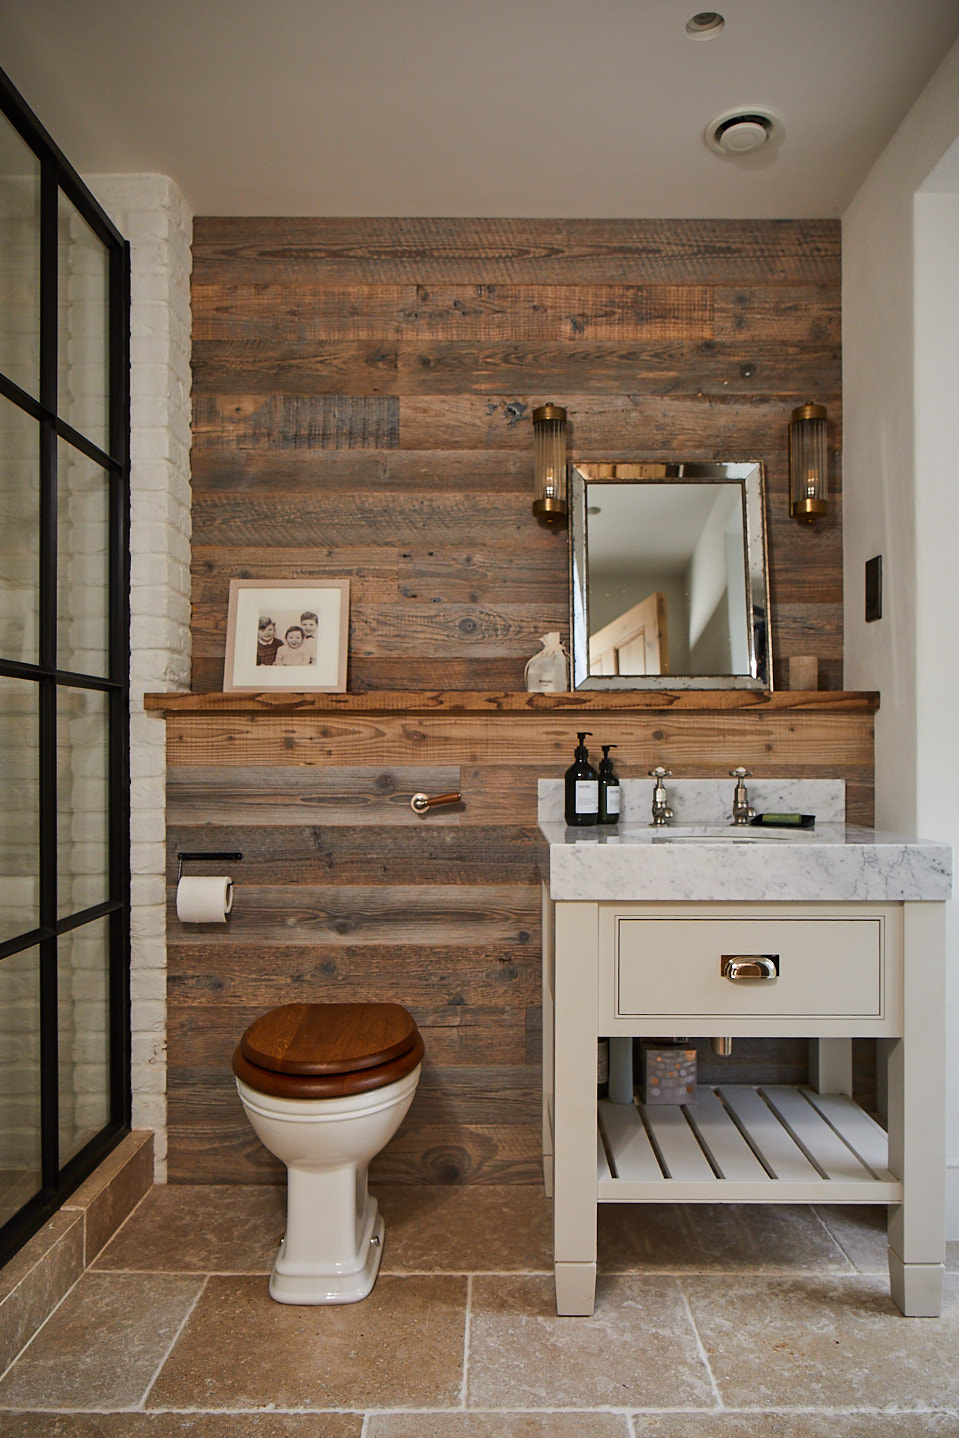 Cladded bathroom with single vanity unit and toilet